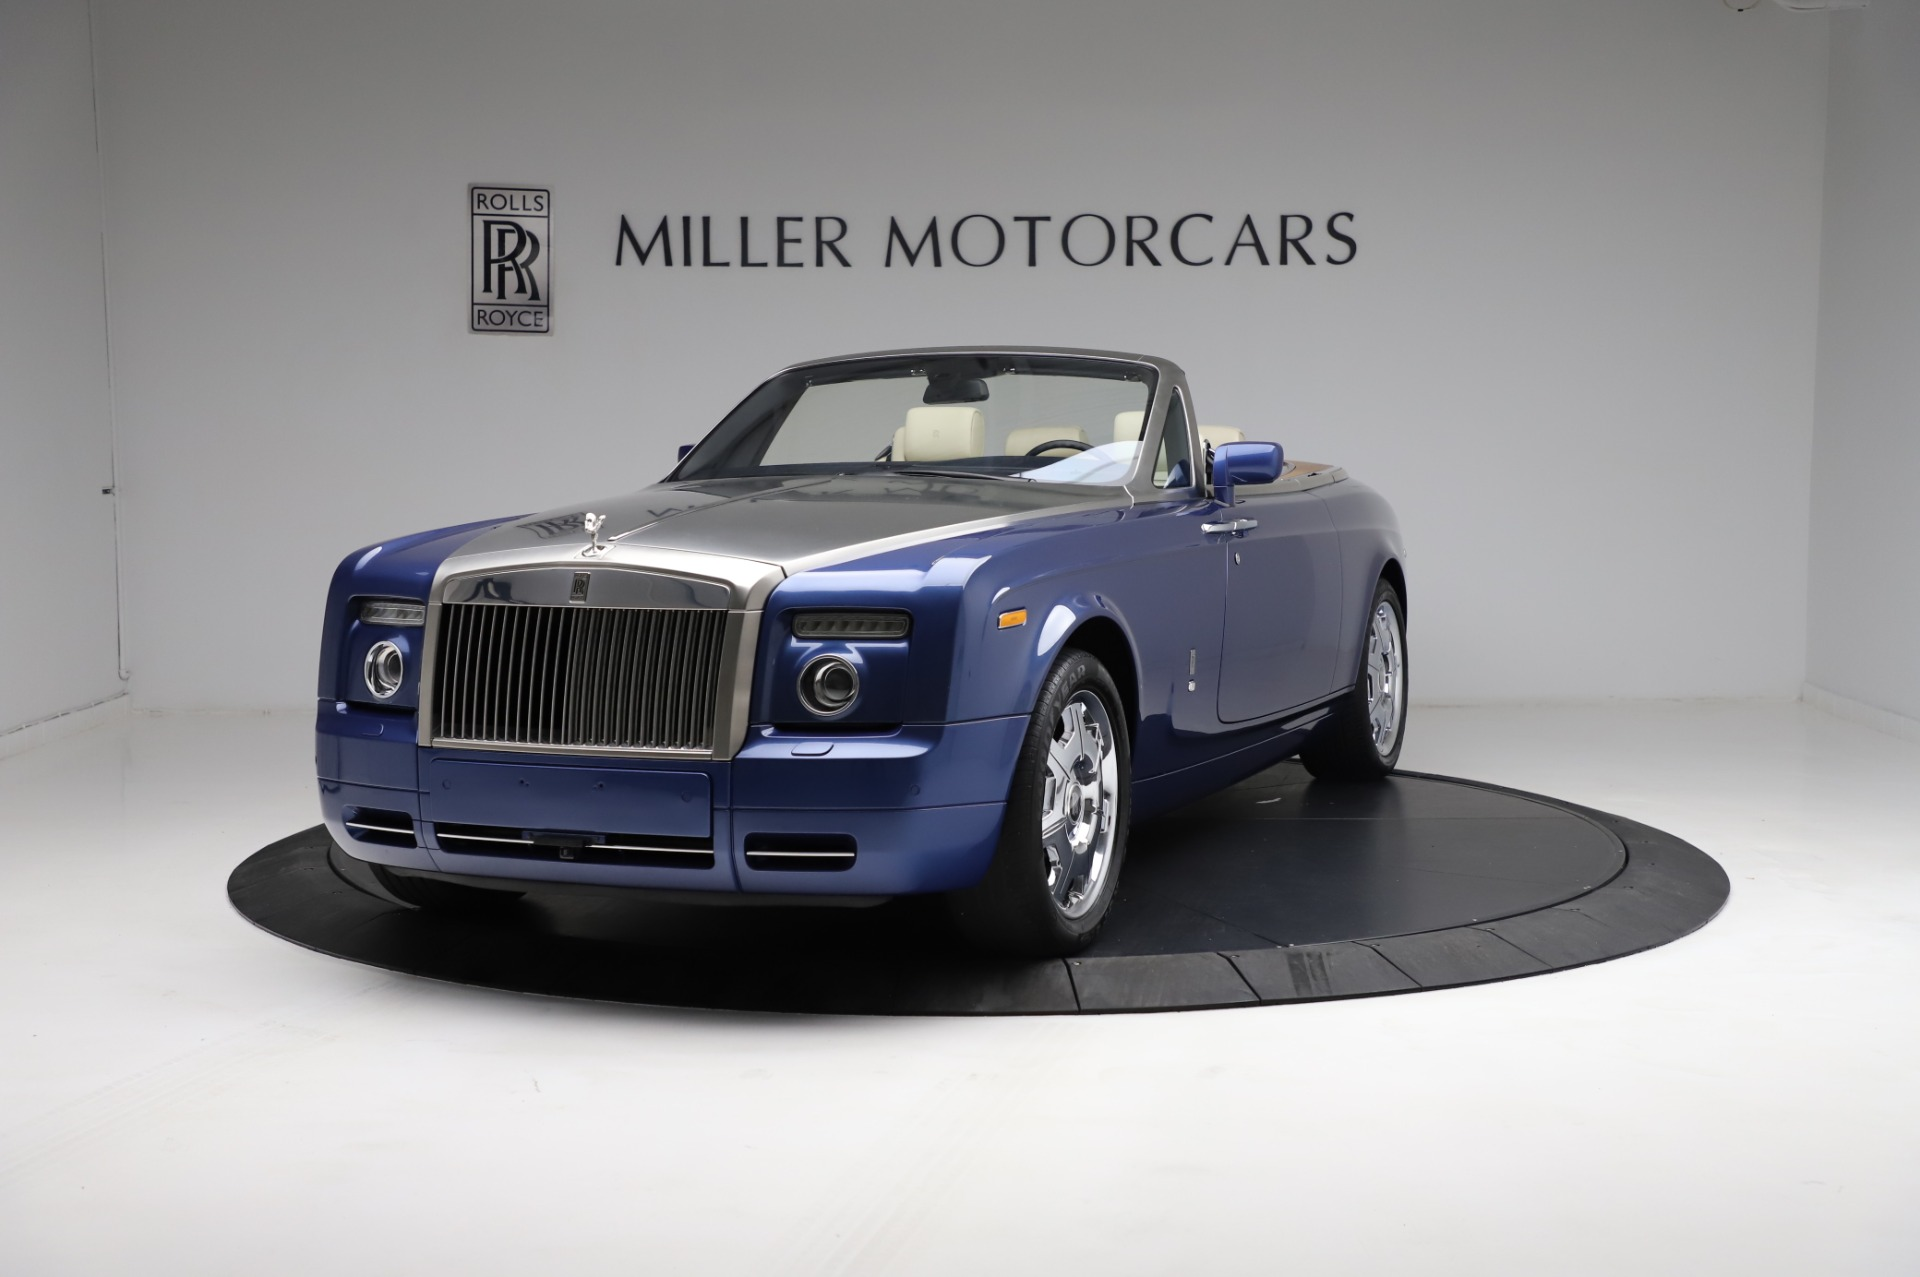 Used 2009 Rolls-Royce Phantom Drophead Coupe for sale $225,900 at Alfa Romeo of Greenwich in Greenwich CT 06830 1